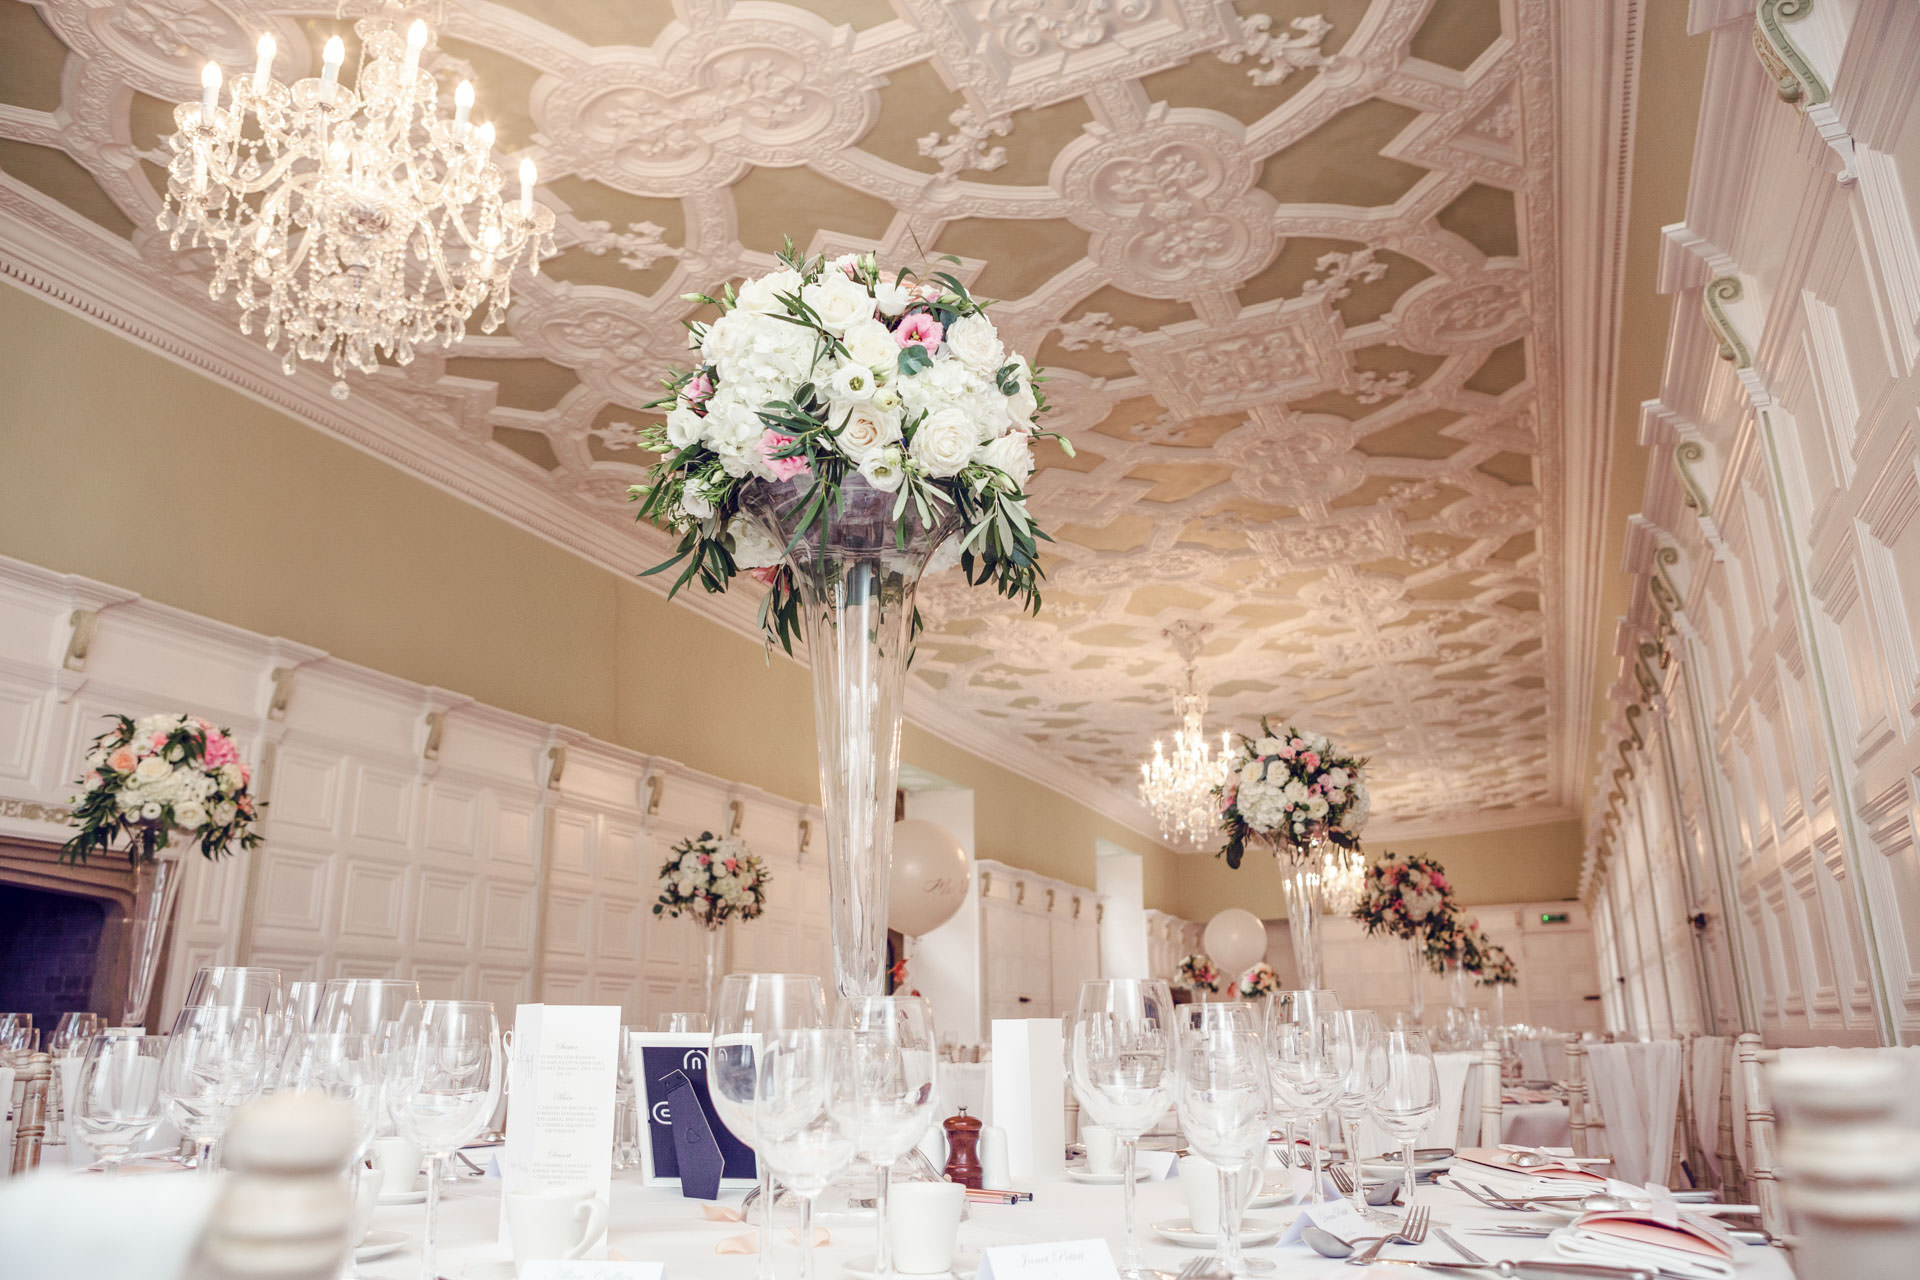 Compact, luxuriant and elegant tall table arrangements in the Long Gallery.